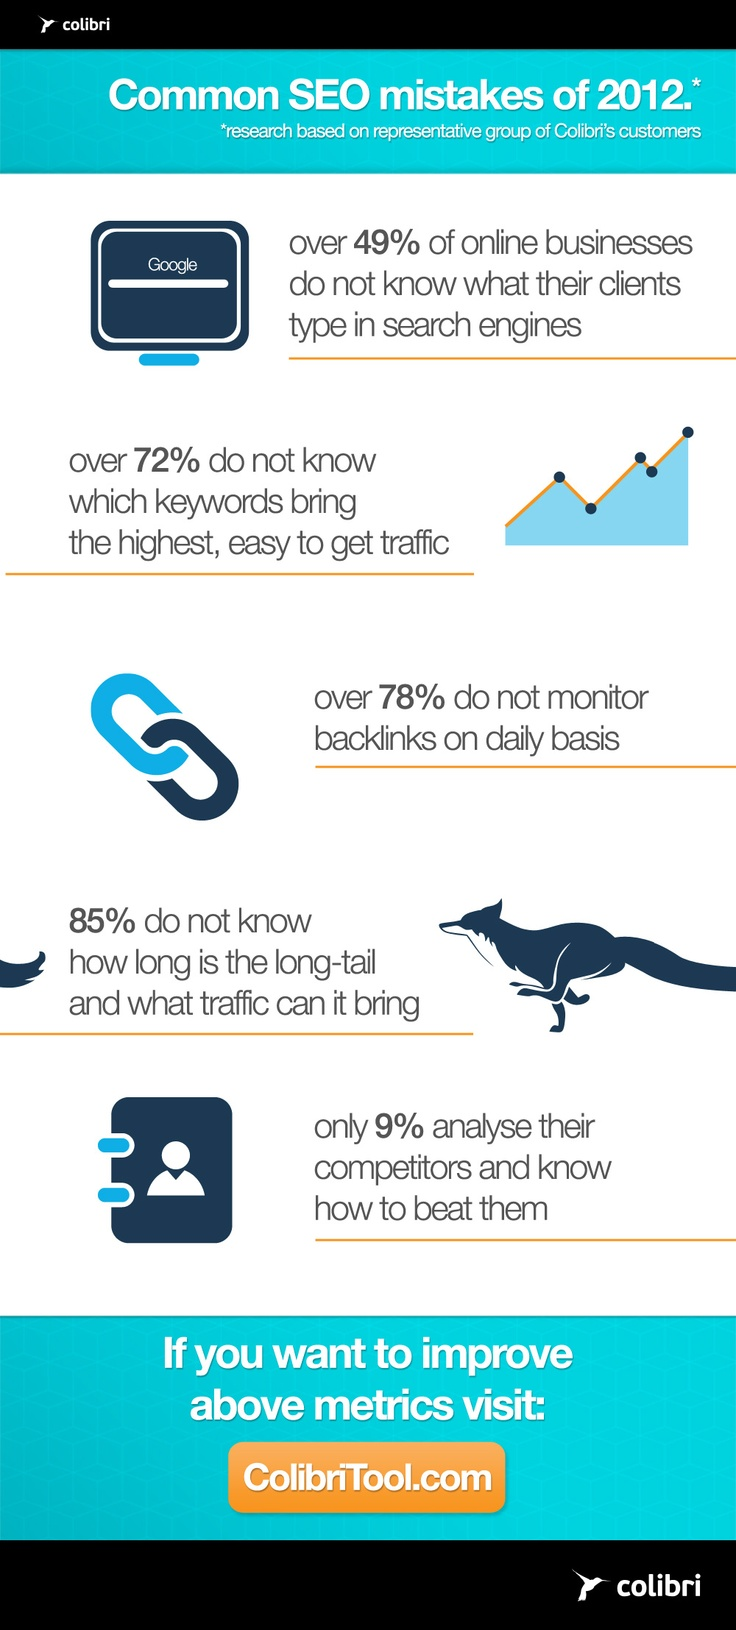 Common SEO mistakes of 2012. Based on research on representative group of new Colibri's customers. Visit http://ColibriTool.com/